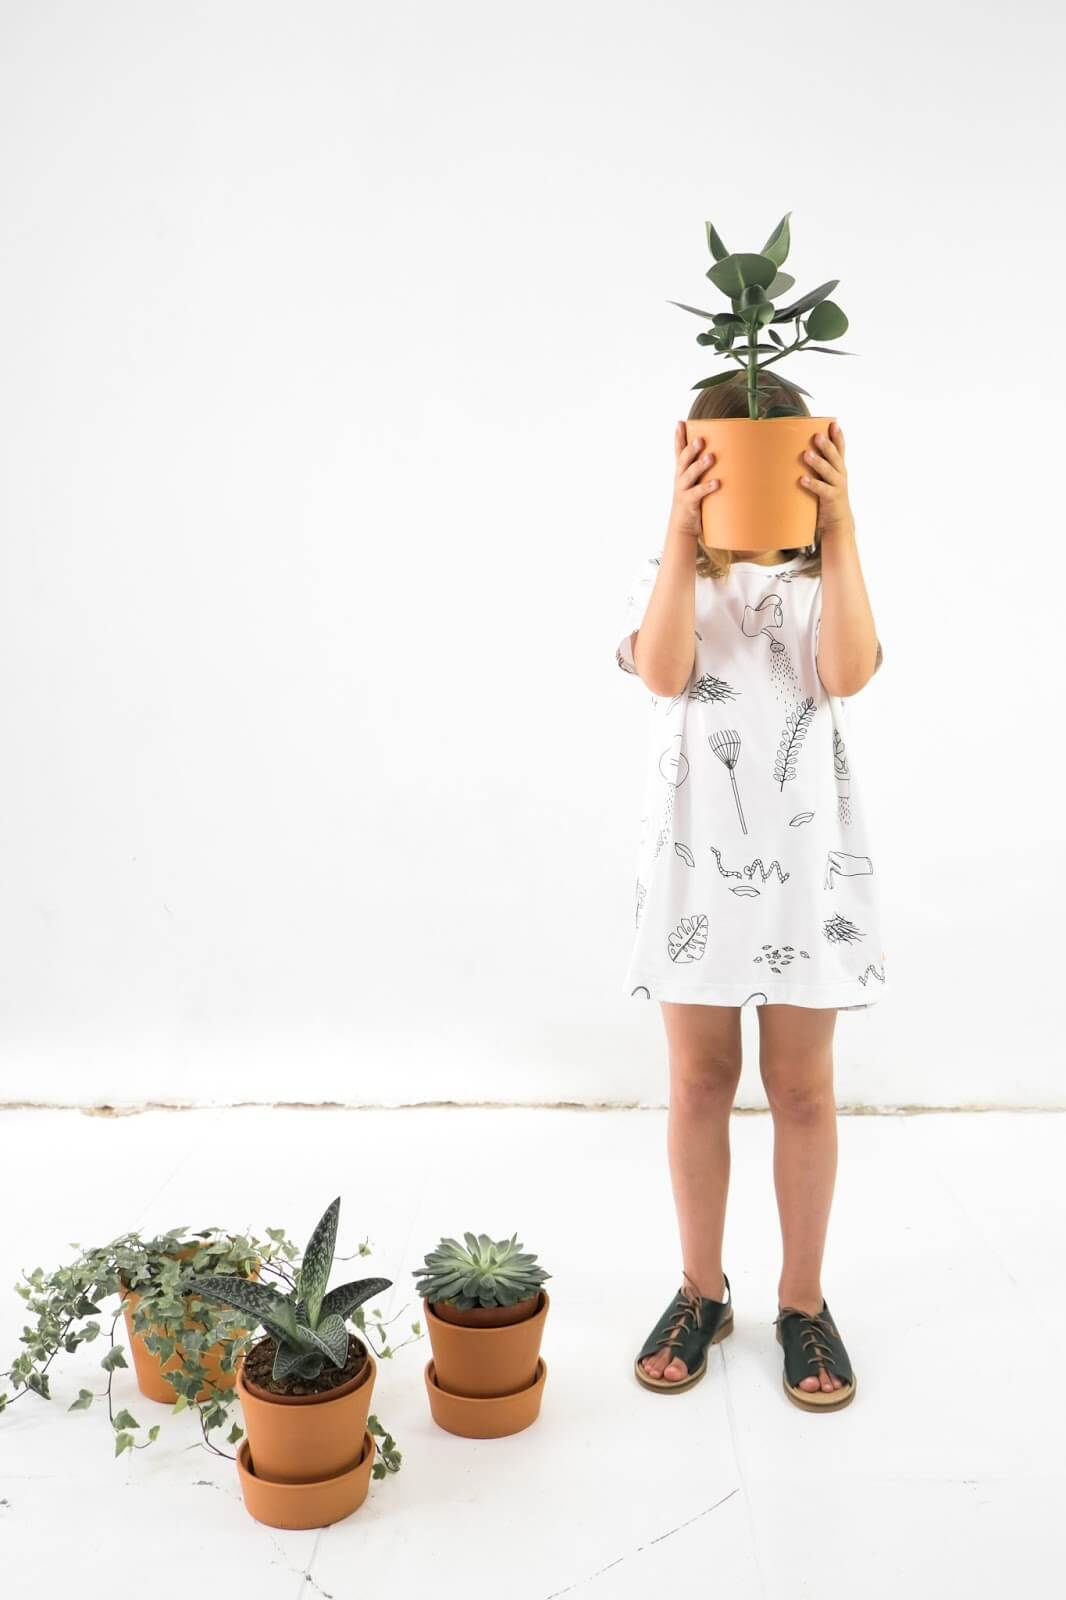 tinycottons S/S 2016